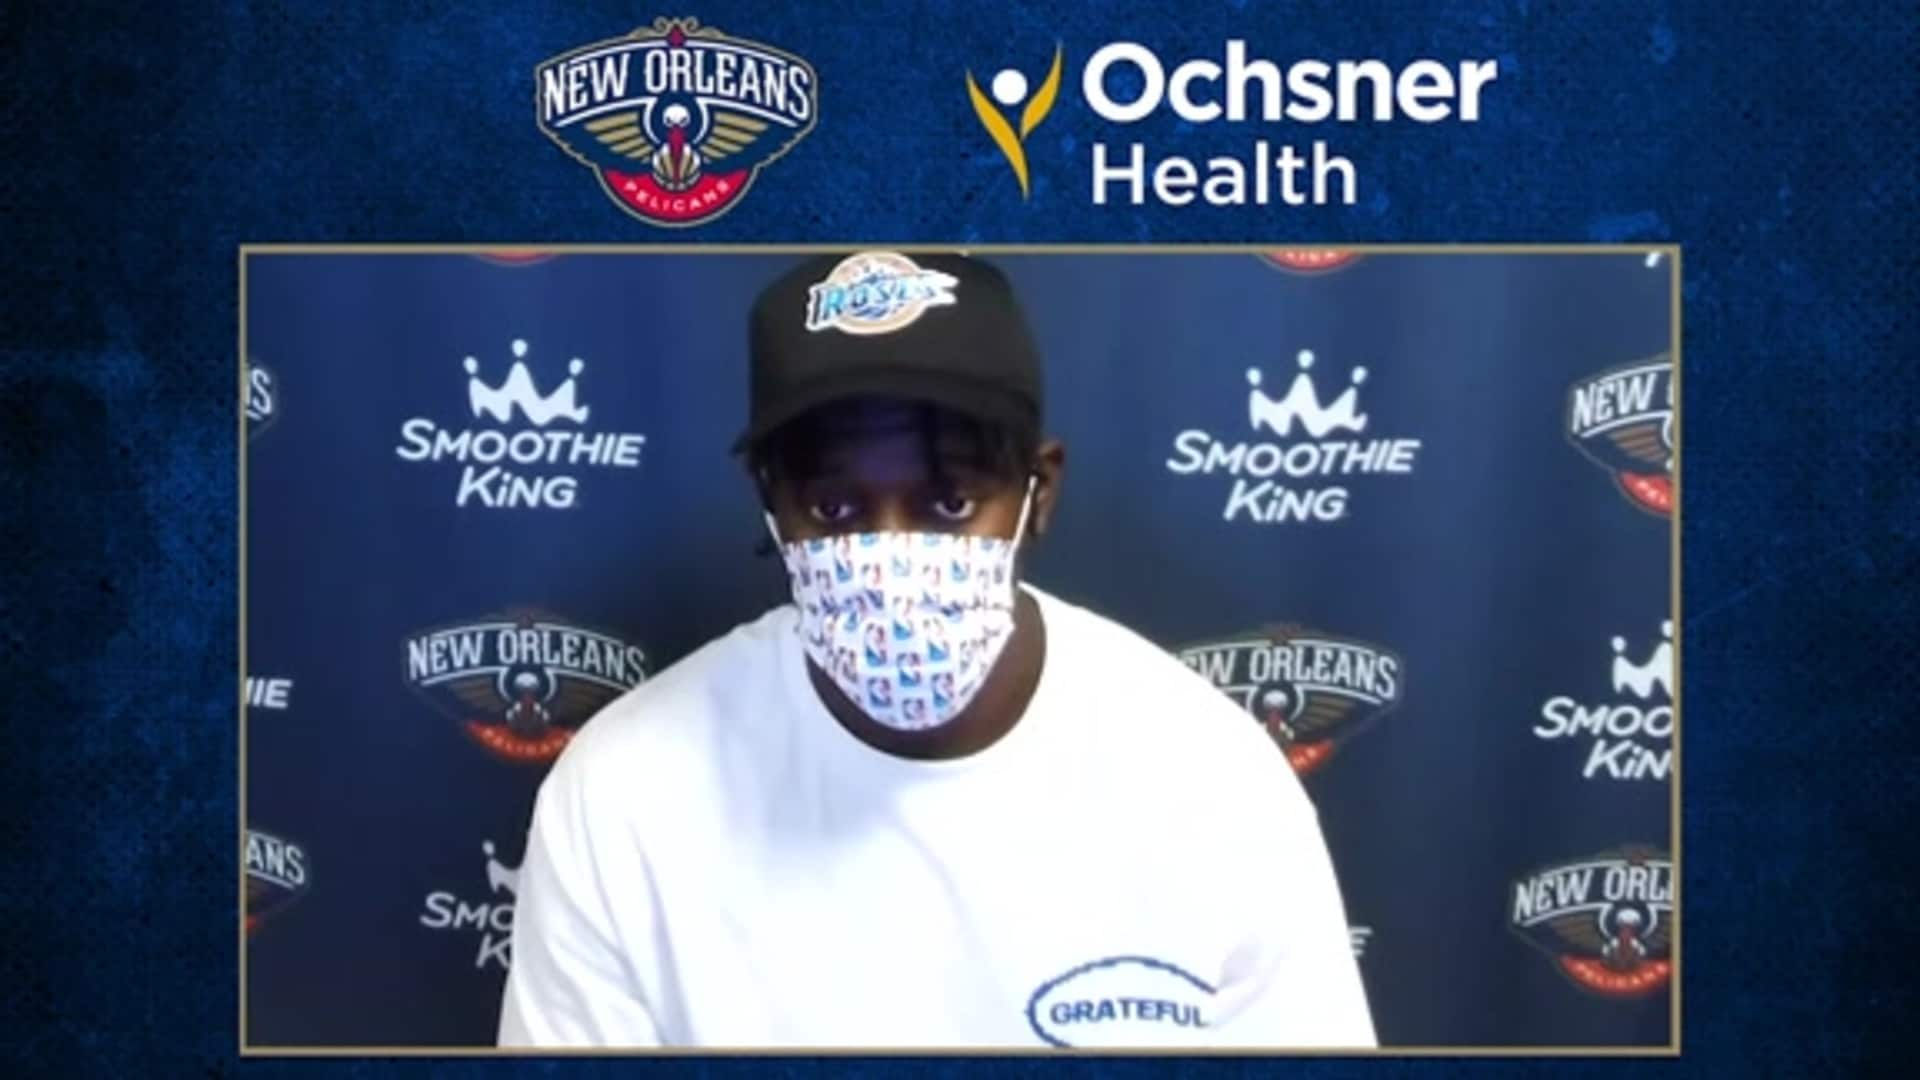 Pelicans Postgame Interview: Jrue Holiday evaluates the team's loss to the Clippers